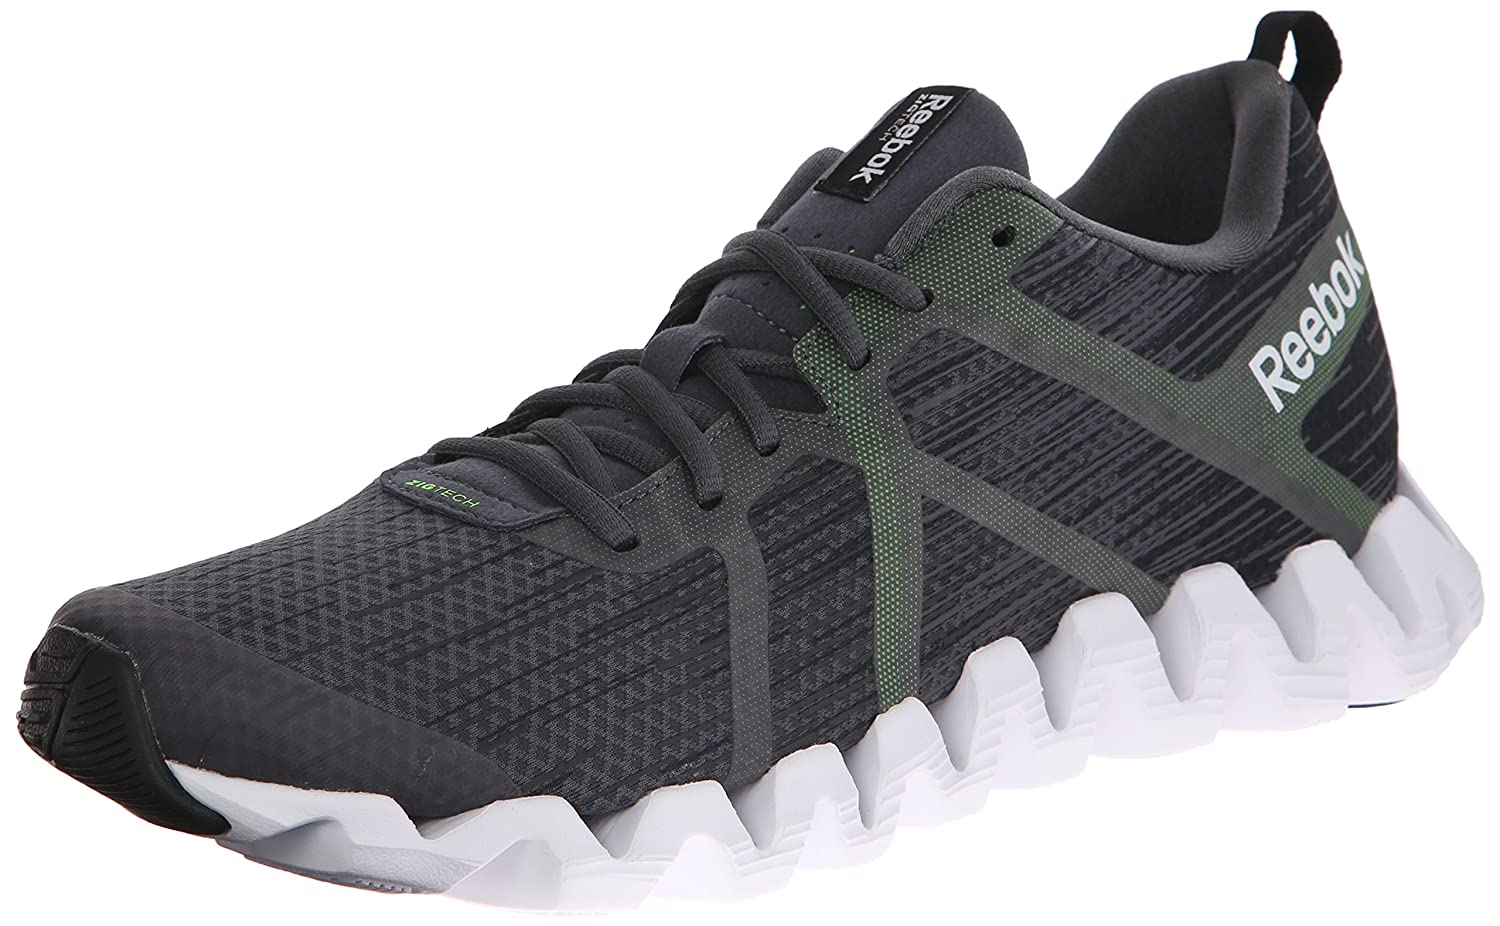 more photos f9ae0 68052 Reebok Men s Zigtech Squared 2.0 Running Shoe, Graphite Gravel Black Solar  Green White, 8.5 M US  Buy Online at Low Prices in India - Amazon.in